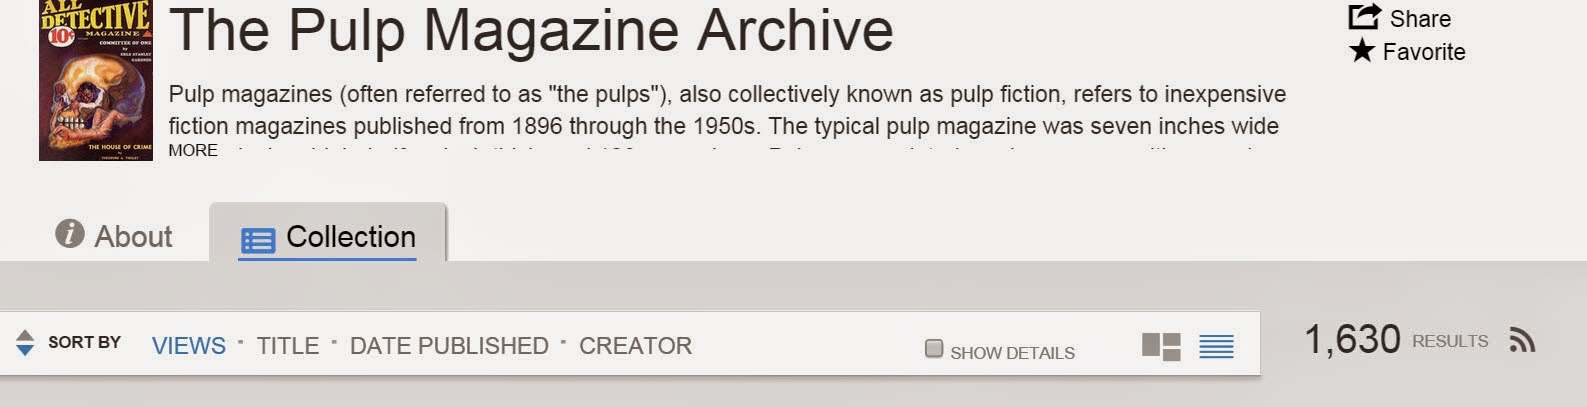 Screen shot of the Pulp Magazine Archive